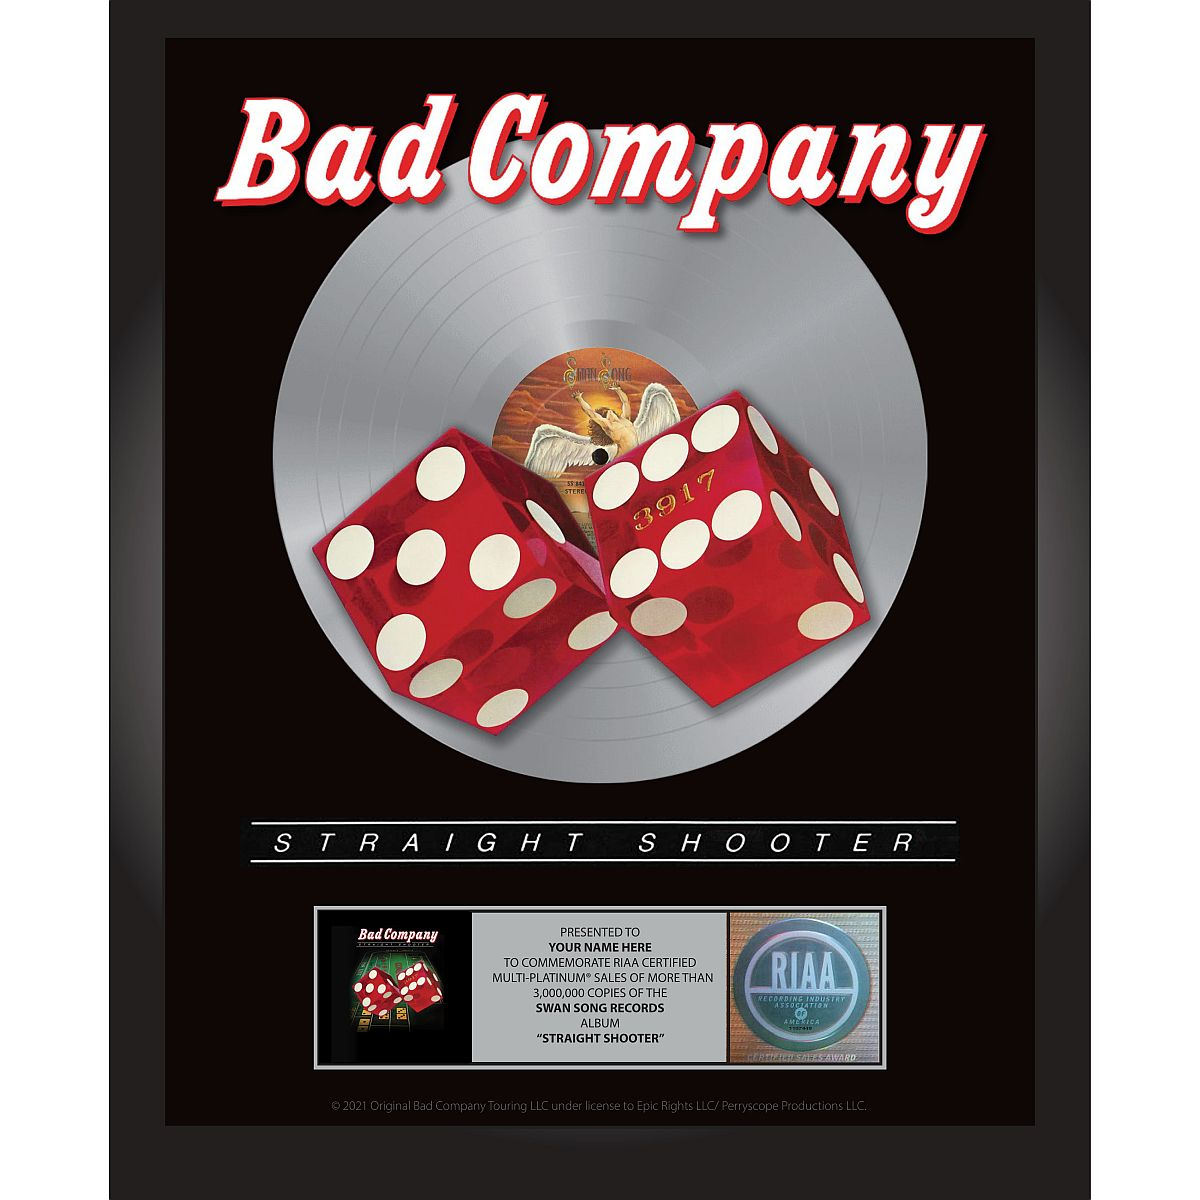 Bad Company Straight Shooter Personalized Award Plaque